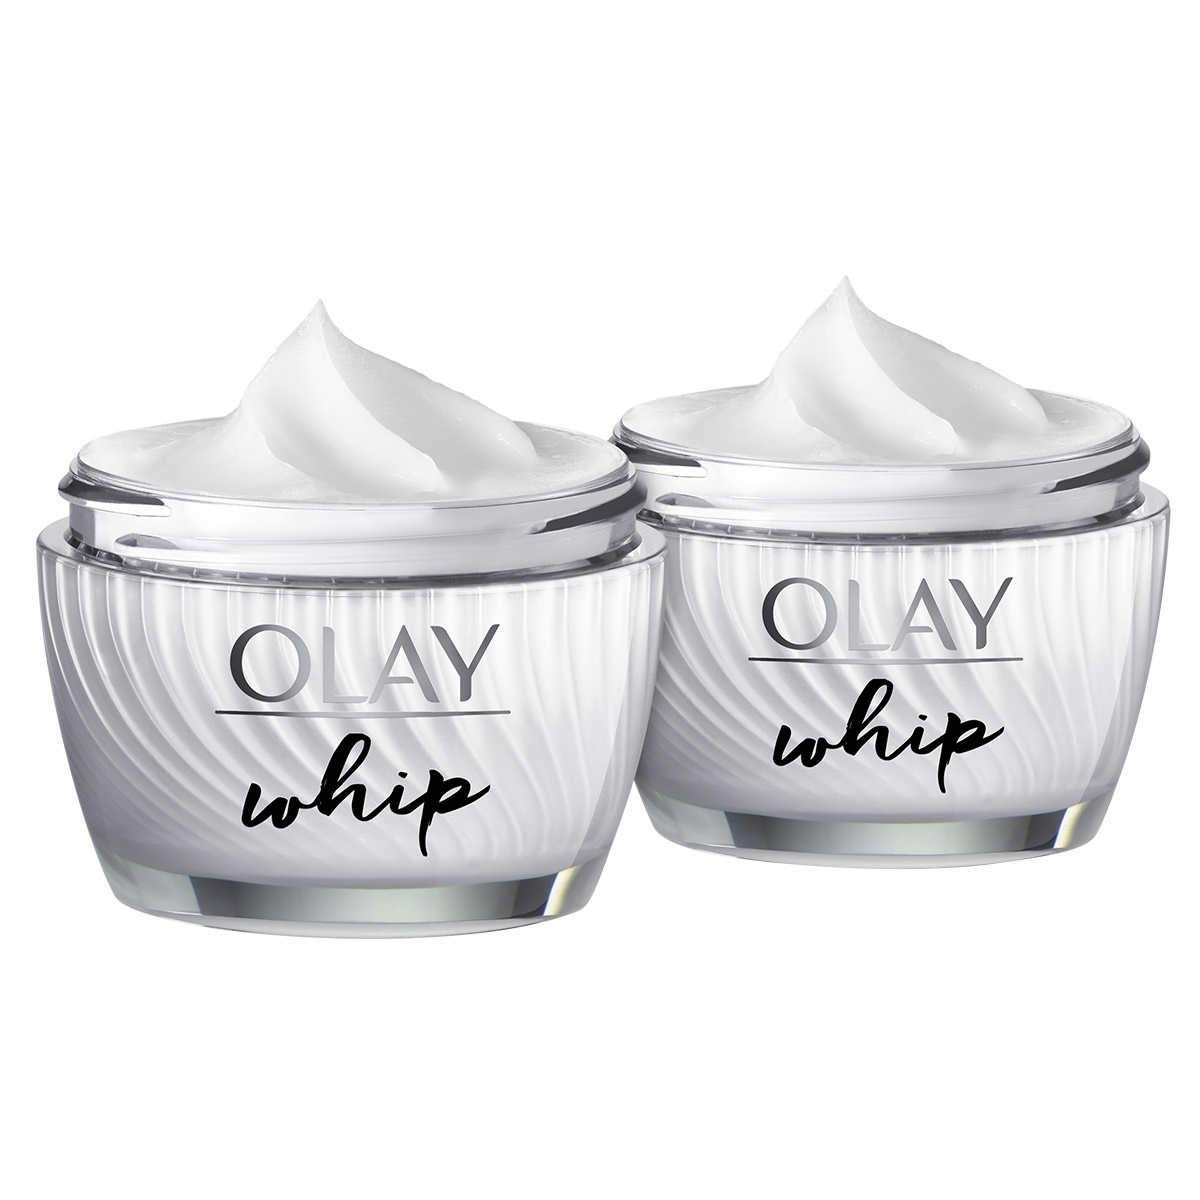 Olay Whip Advanced Cream - Hydrating - Blur Imperfections - Fast Absorbing Formula - 1.7 oz, 2 Pack